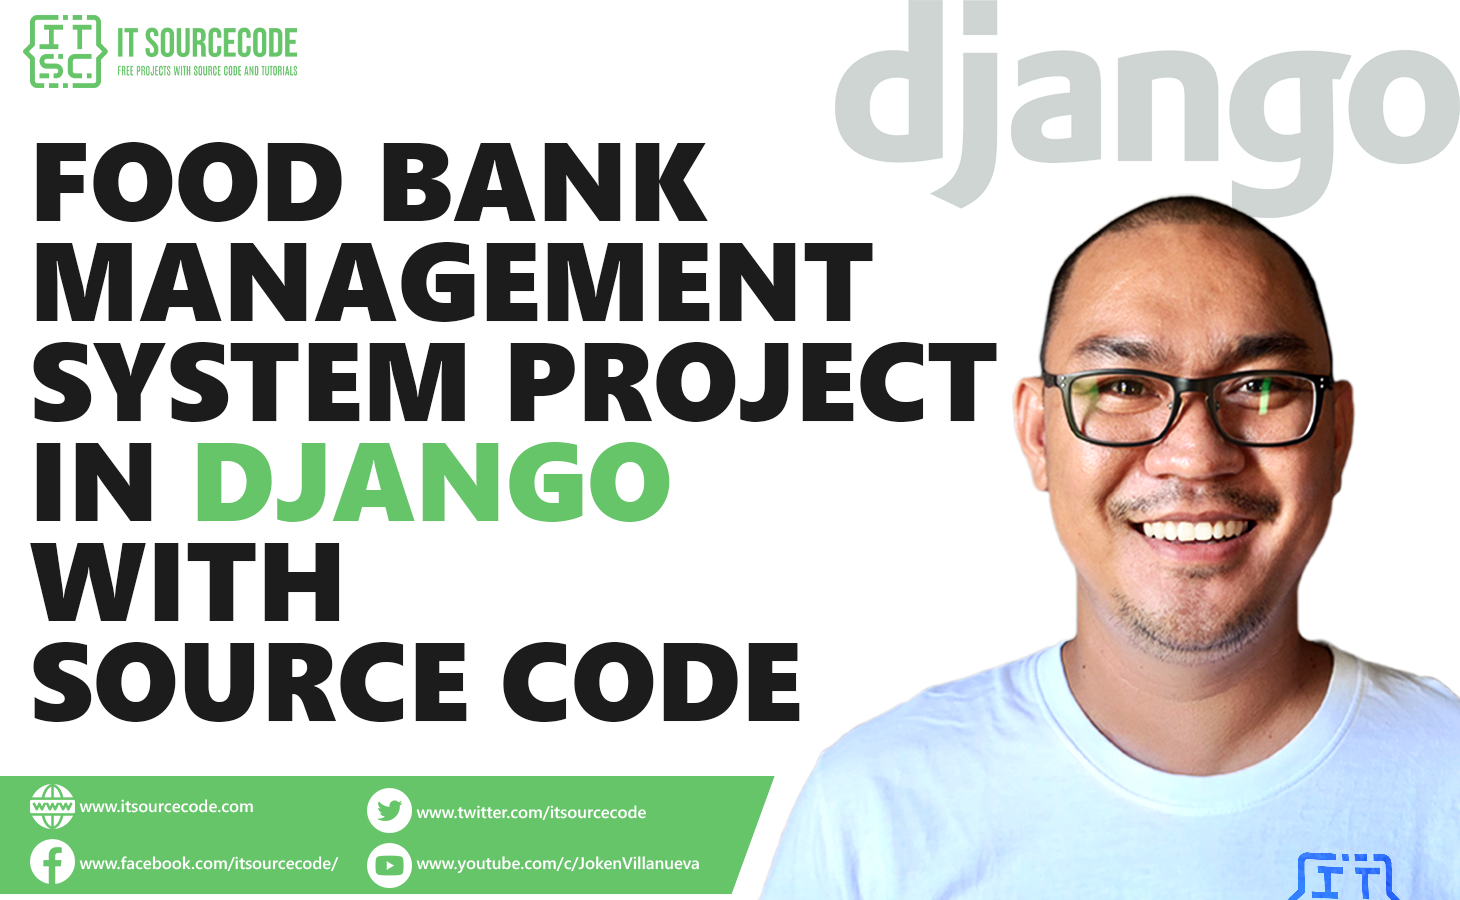 Food Bank Management System Project in Django with Source Code